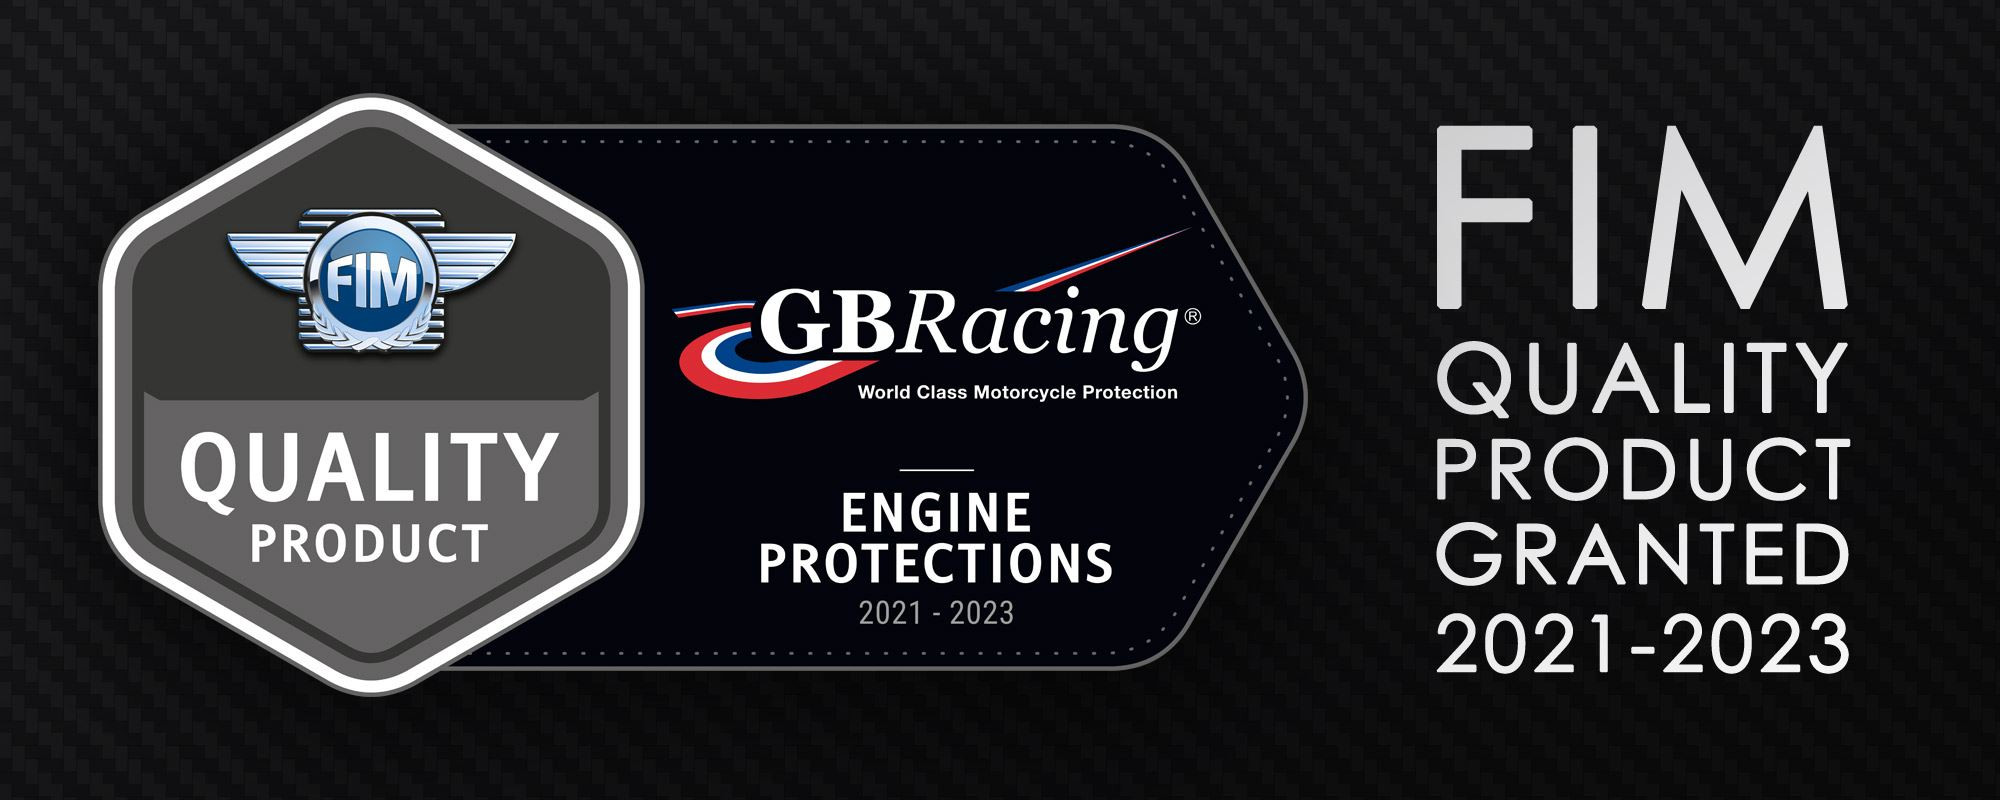 Gamme complète protections carters GBRacing